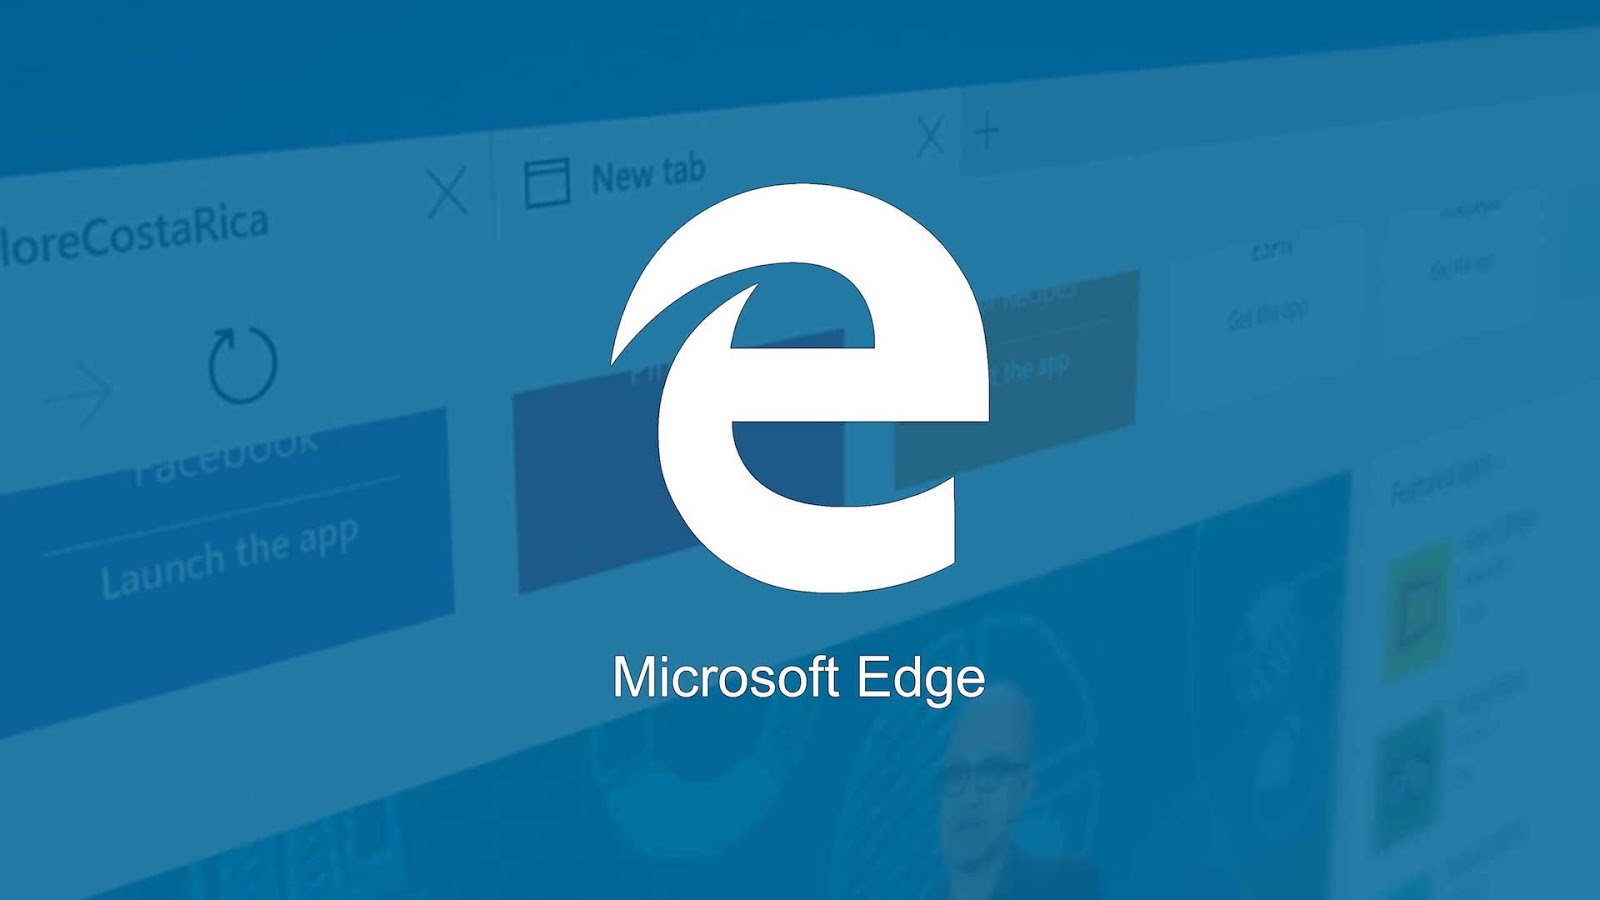 Microsoft has concocted a patent that aims to automatically enable private browsing Edge when a user goes to website on which this mode is regularly used.